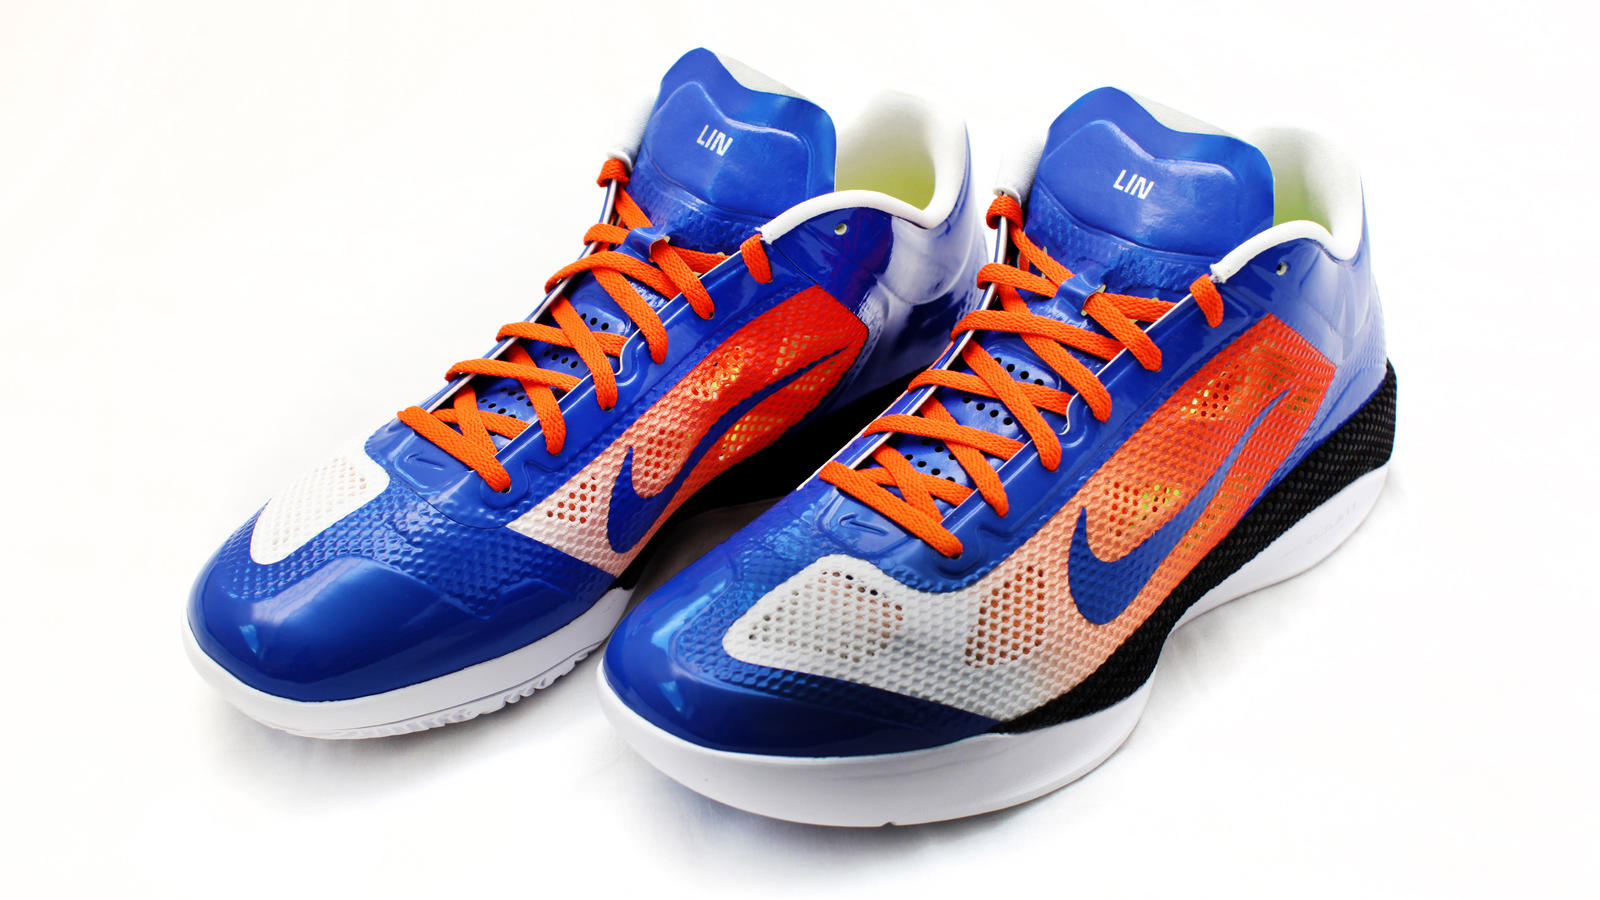 low priced 8aa45 b59e6 Jeremy Lin will wear a new Nike Zoom Hyperfuse Low iD basketball shoe this  weekend in Orlando beginning Friday evening. Customized for Lin, the Nike  Zoom ...